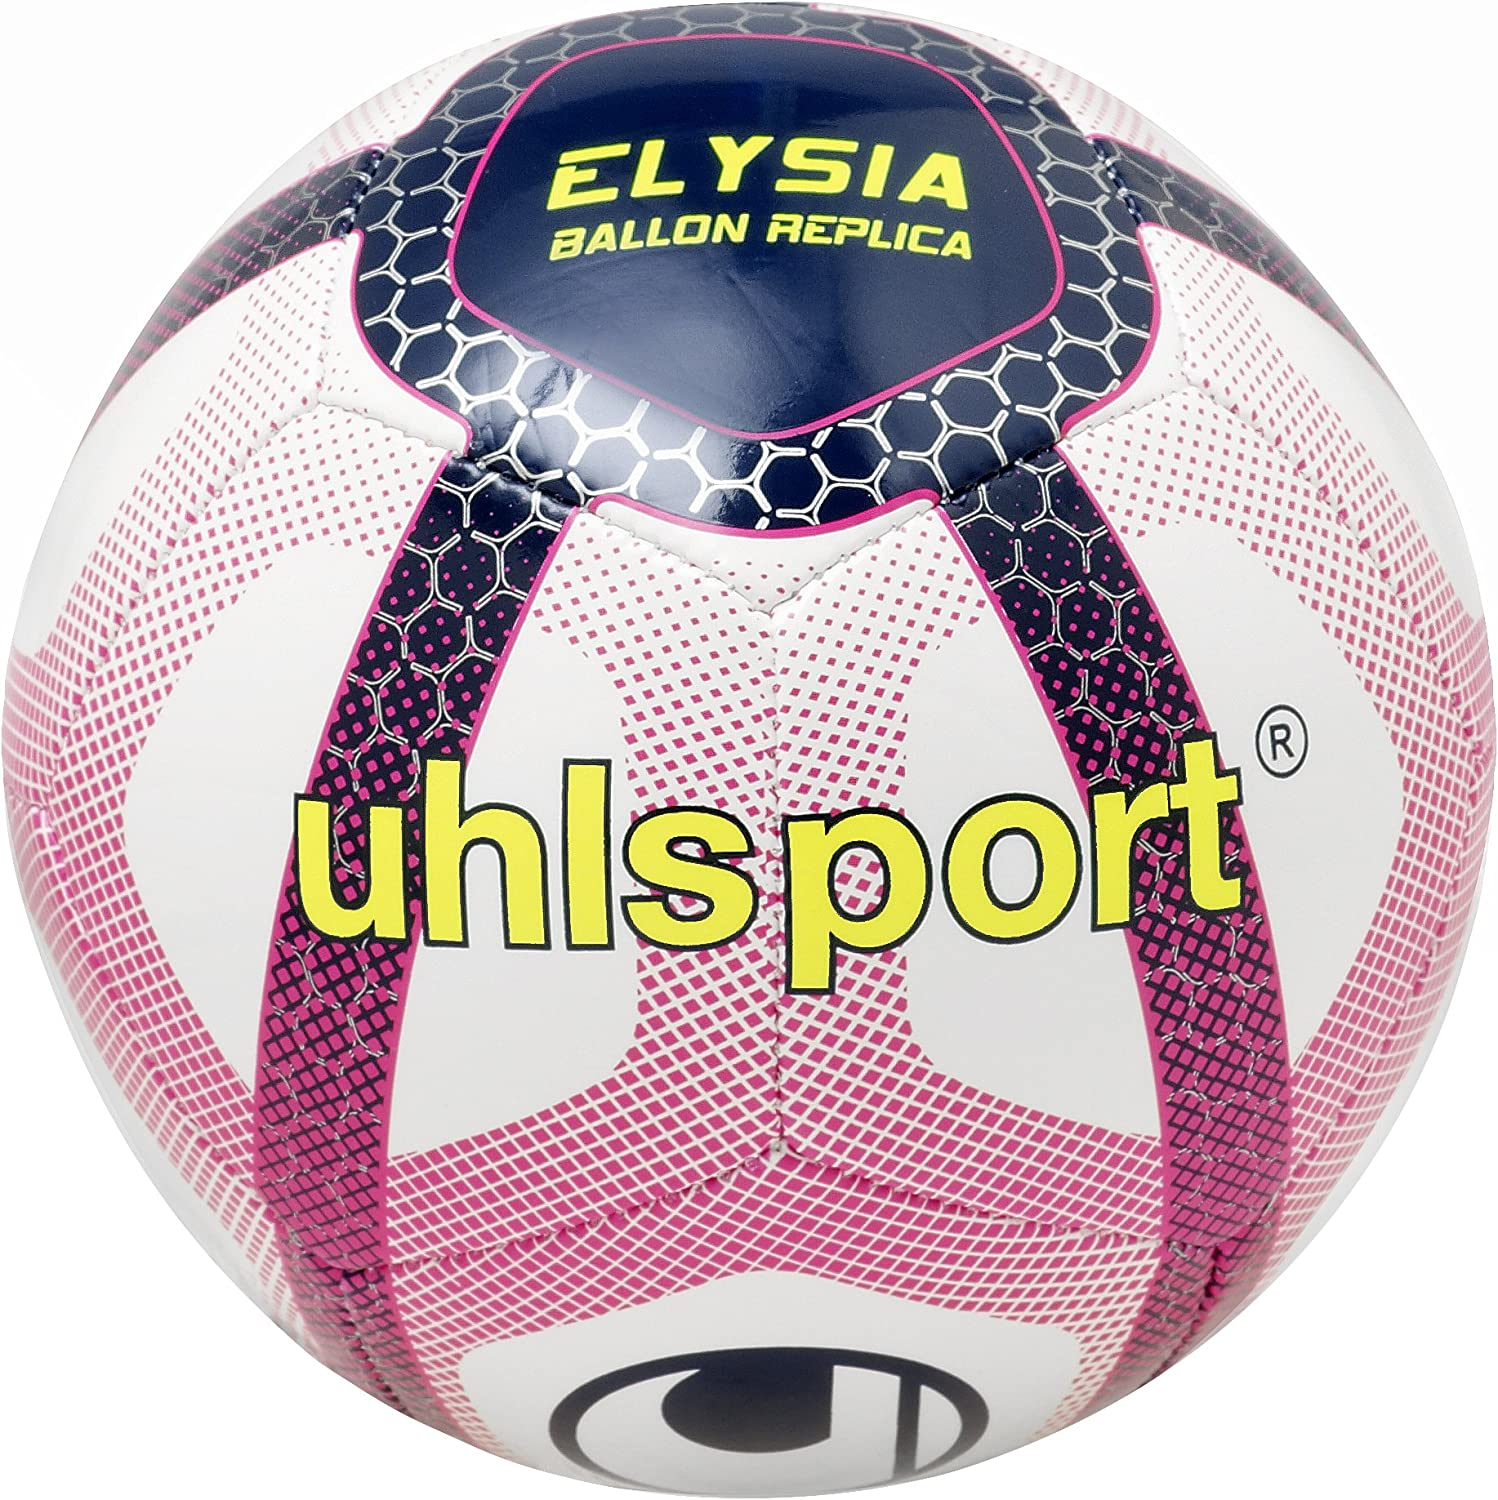 Uhlsport – Elysia Mini – Balón Fútbol – Performances Excellentes ...